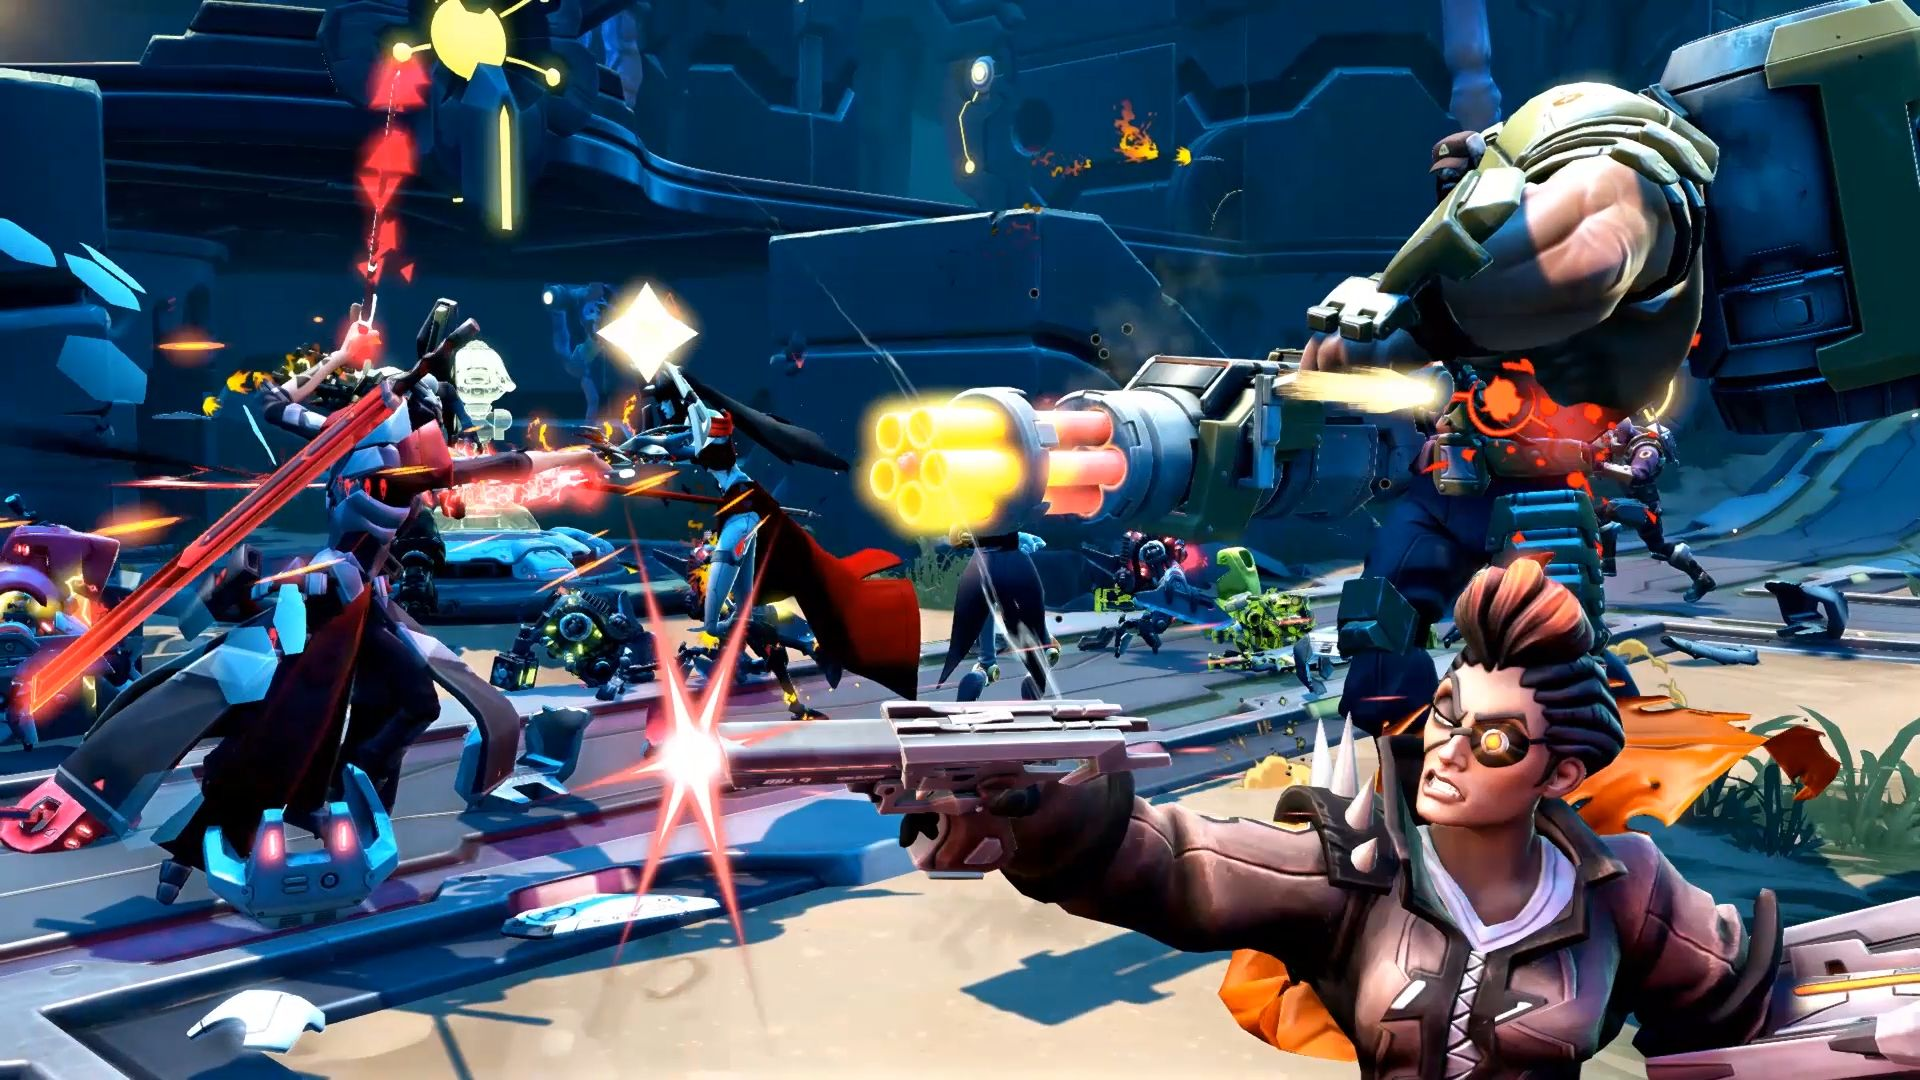 2KGMKT_BATTLEBORN_FREETRIAL_Group-Fight_03_1920x1080